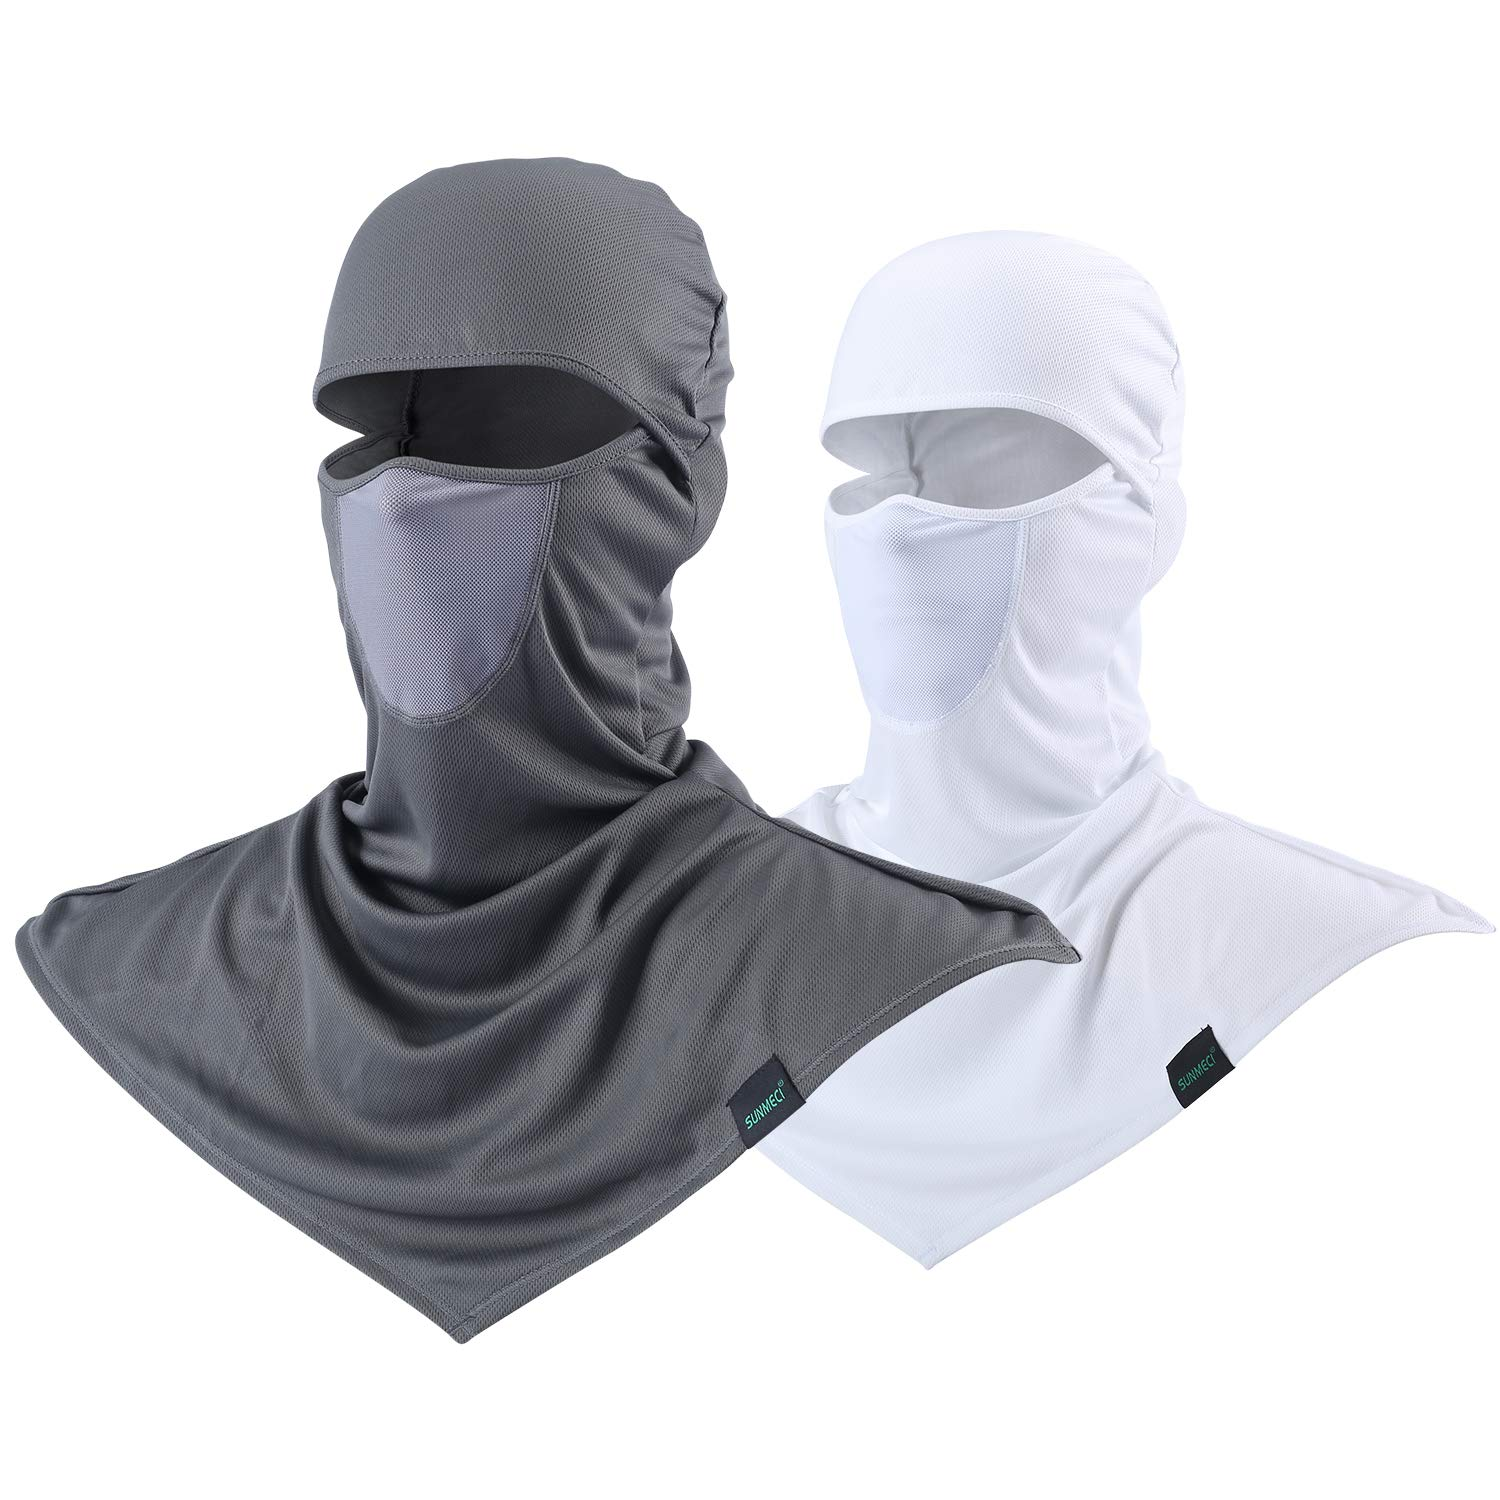 SUNMECI Balaclava - Windproof and Sun Protection Full Face Mask Cycling Motorcycle Breathable Neck Cover in Summer for Men and Women